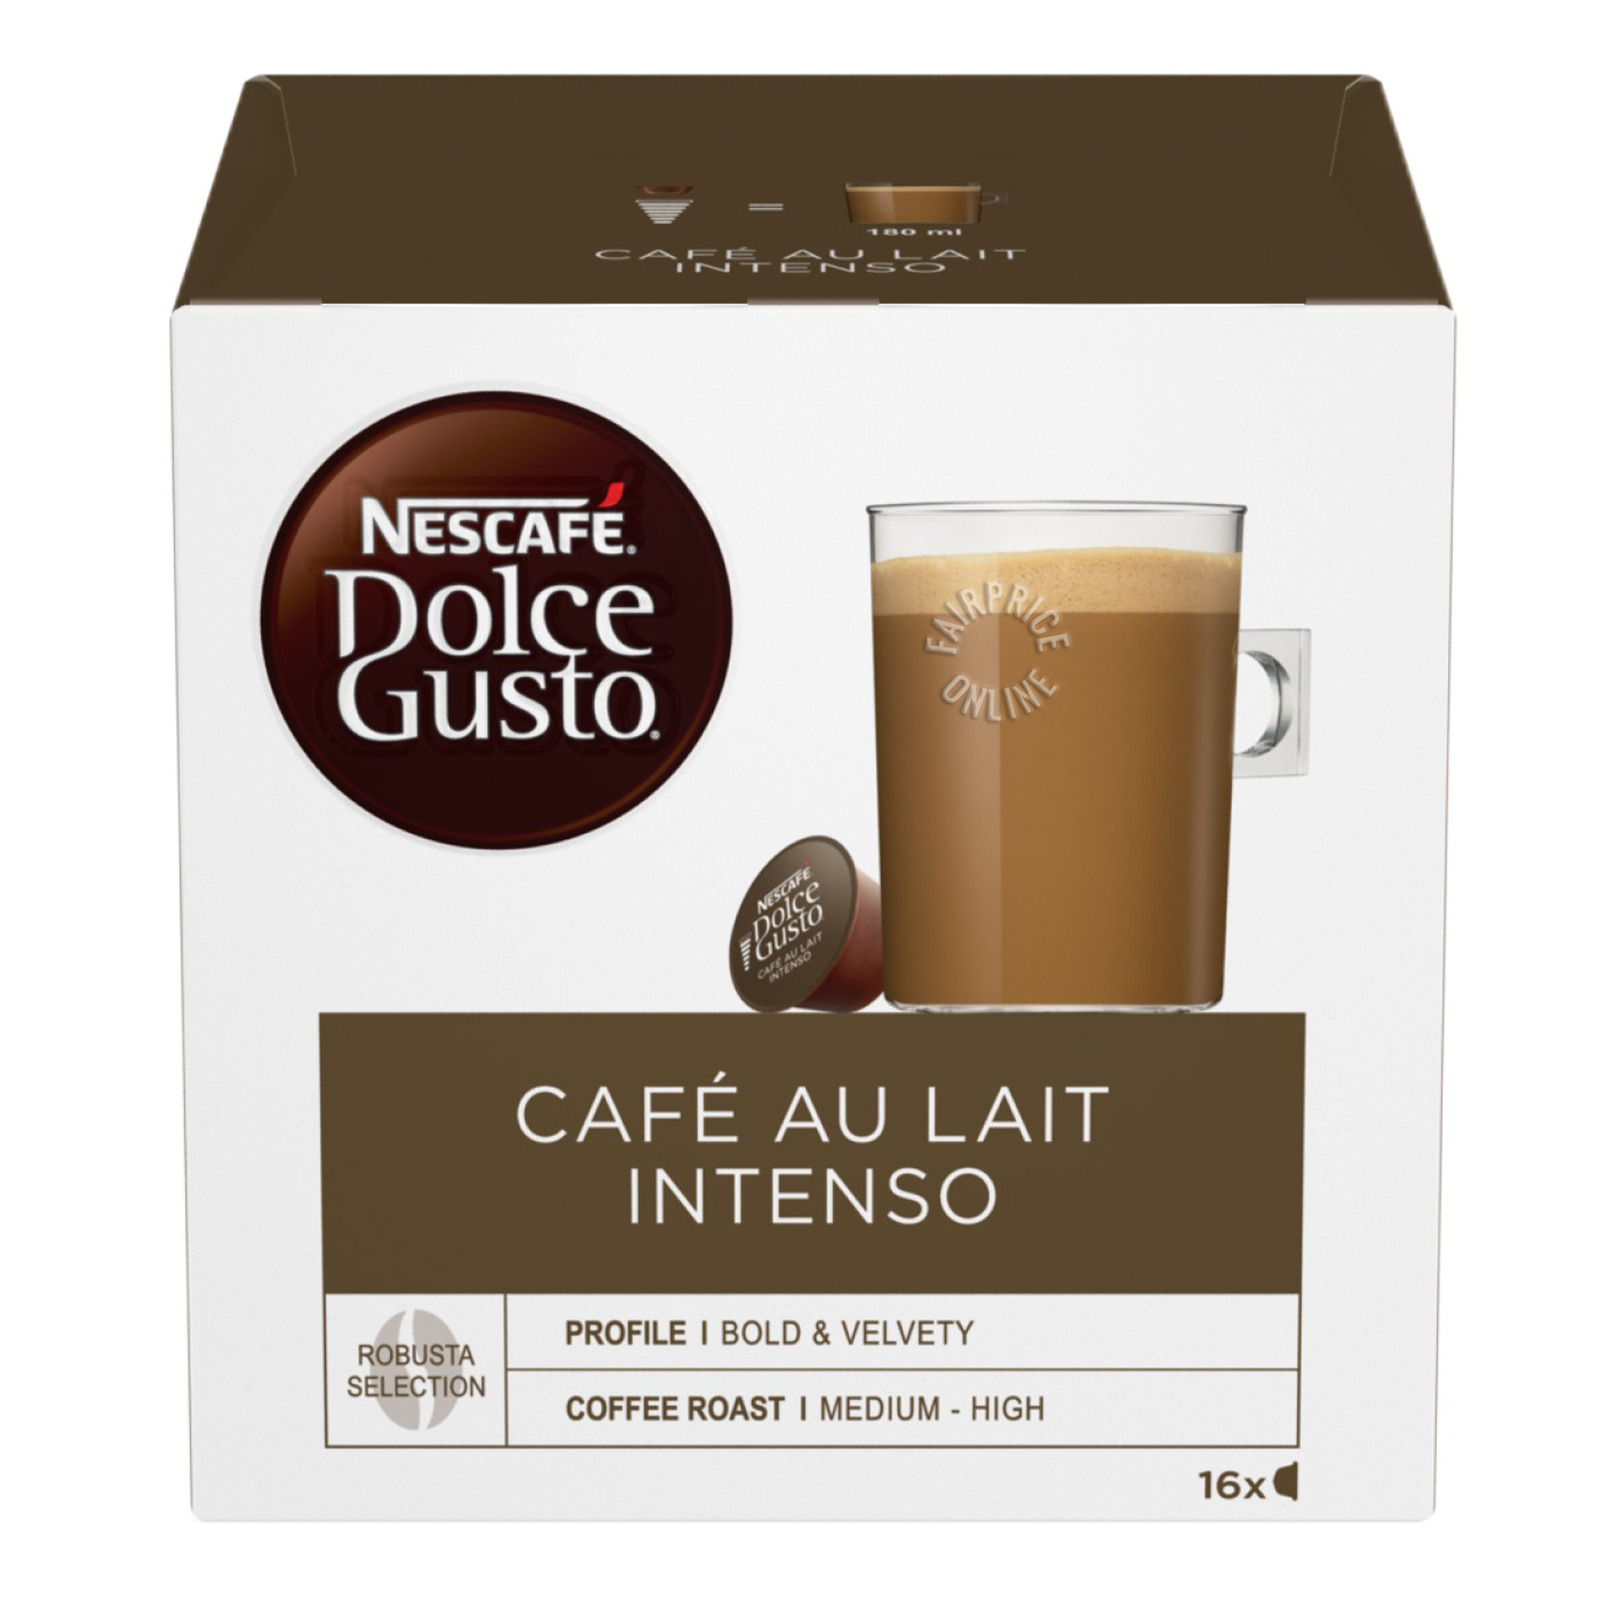 Nescafe Dolce Gusto Beverage Capsules - Cafe Au Lait Intenso